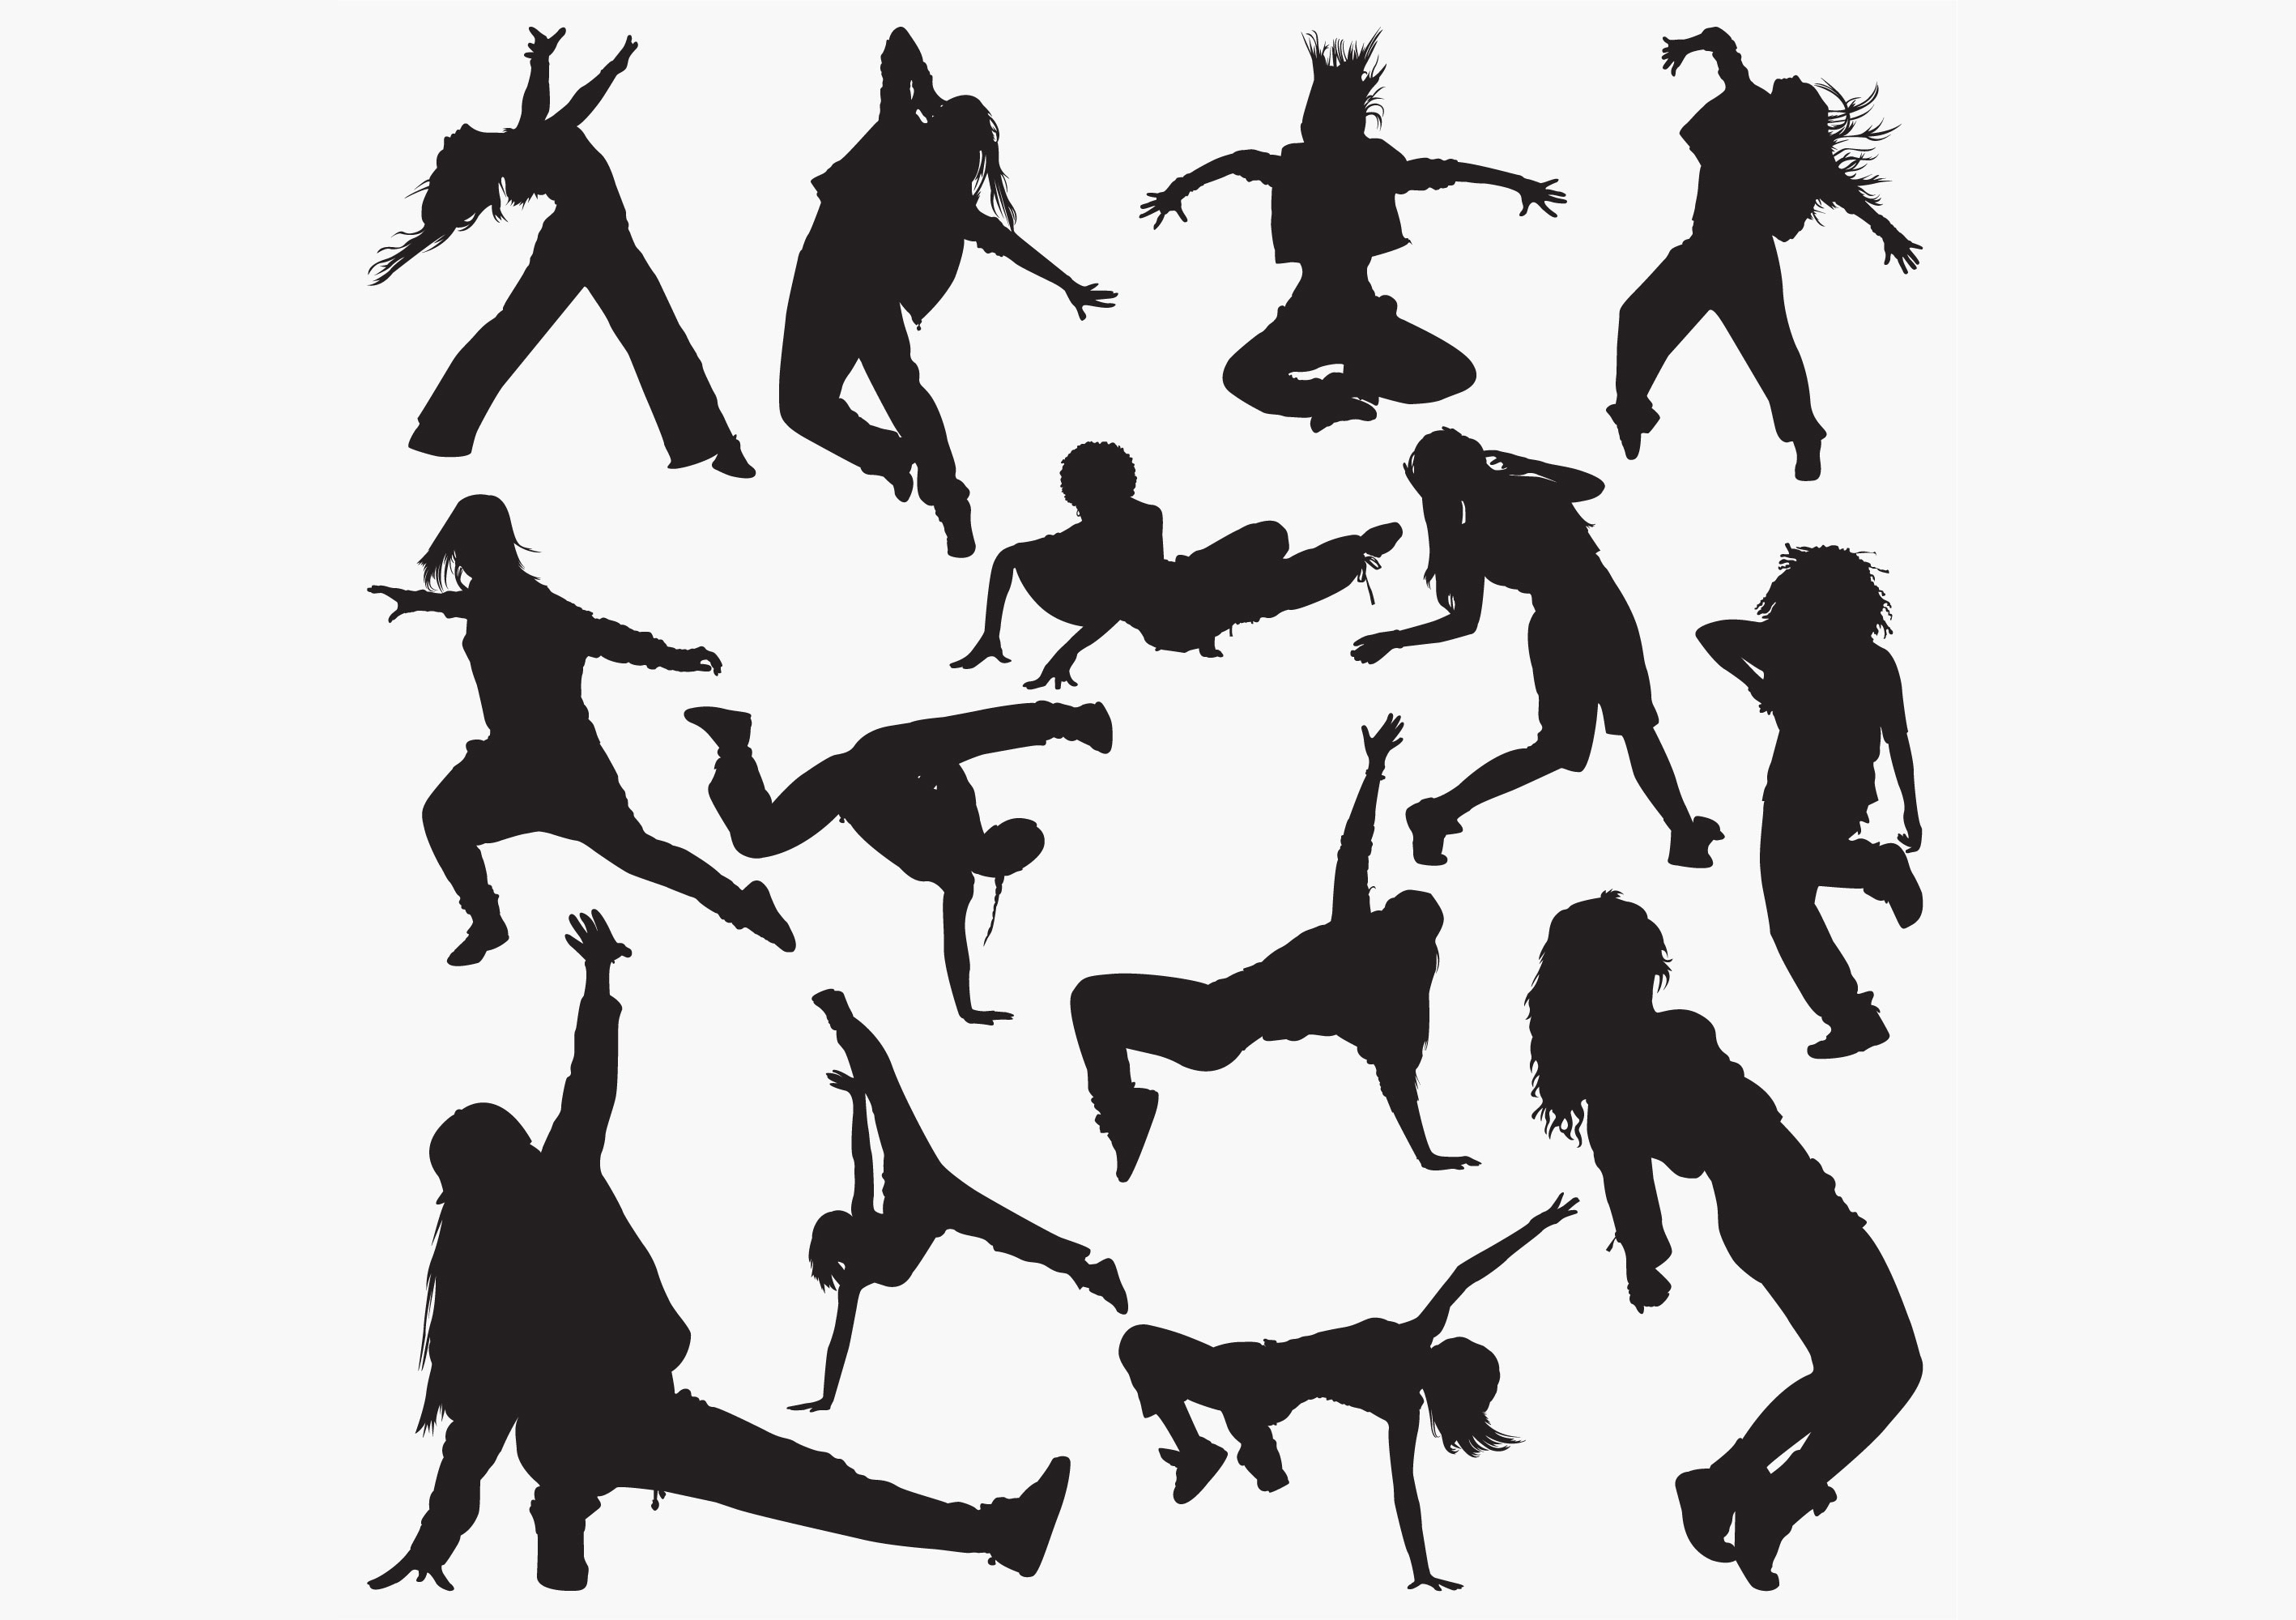 Download Free Women Street Dance Silhouettes Graphic By Octopusgraphic for Cricut Explore, Silhouette and other cutting machines.